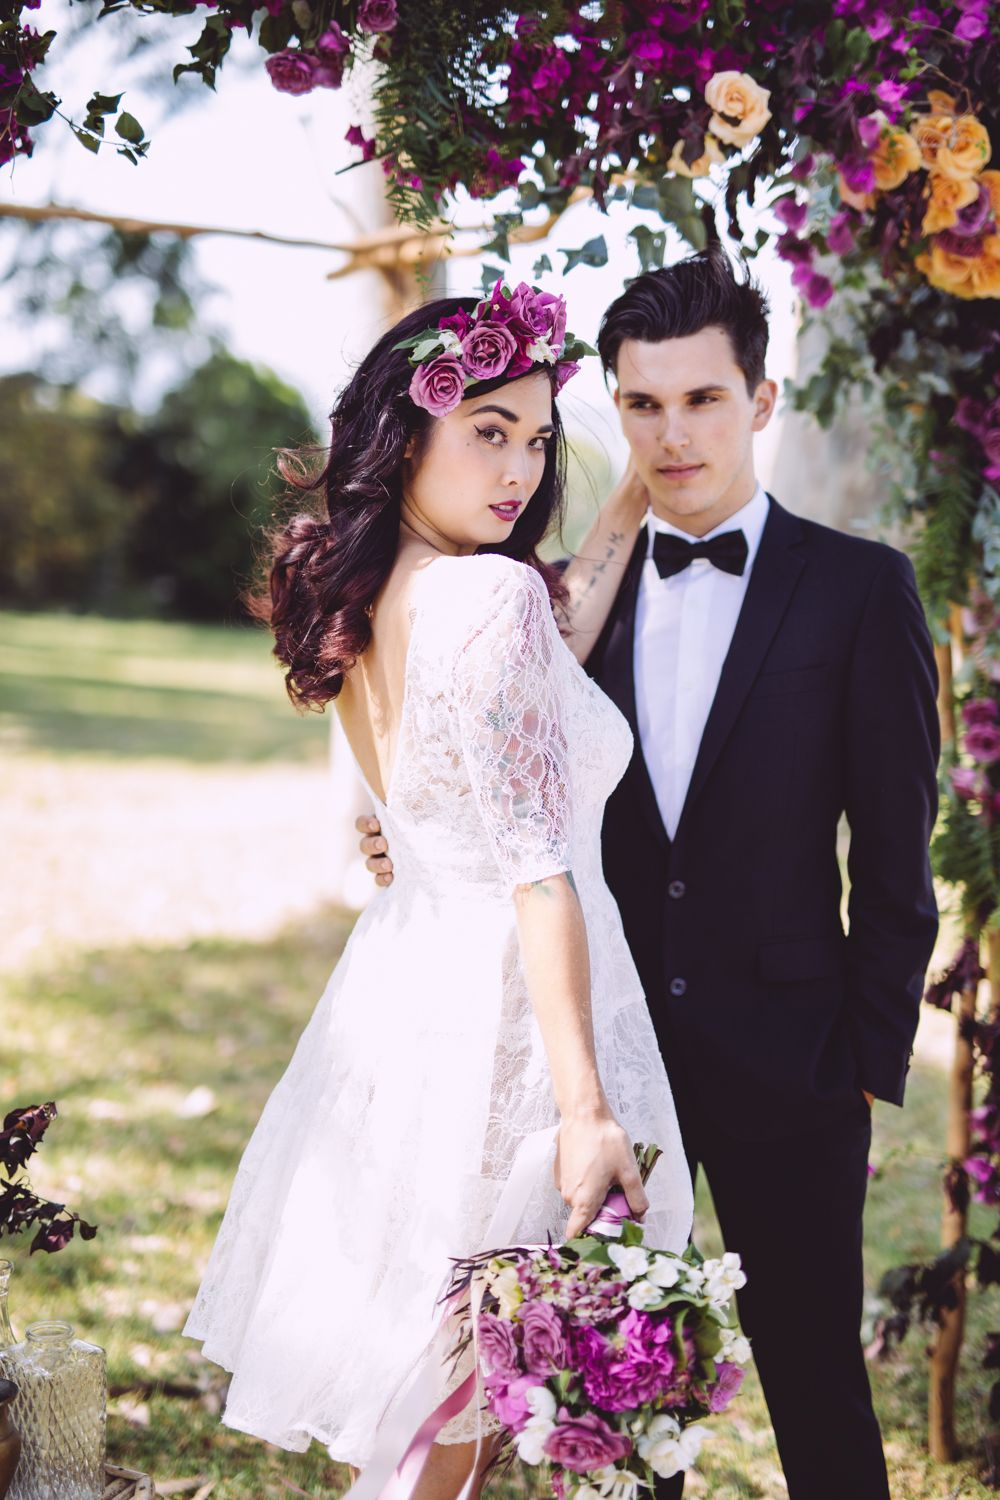 Pin By Two Hearts Club On Two Hearts Club Wild Roses Flower Crown Wedding Flower Girl Dresses Wedding